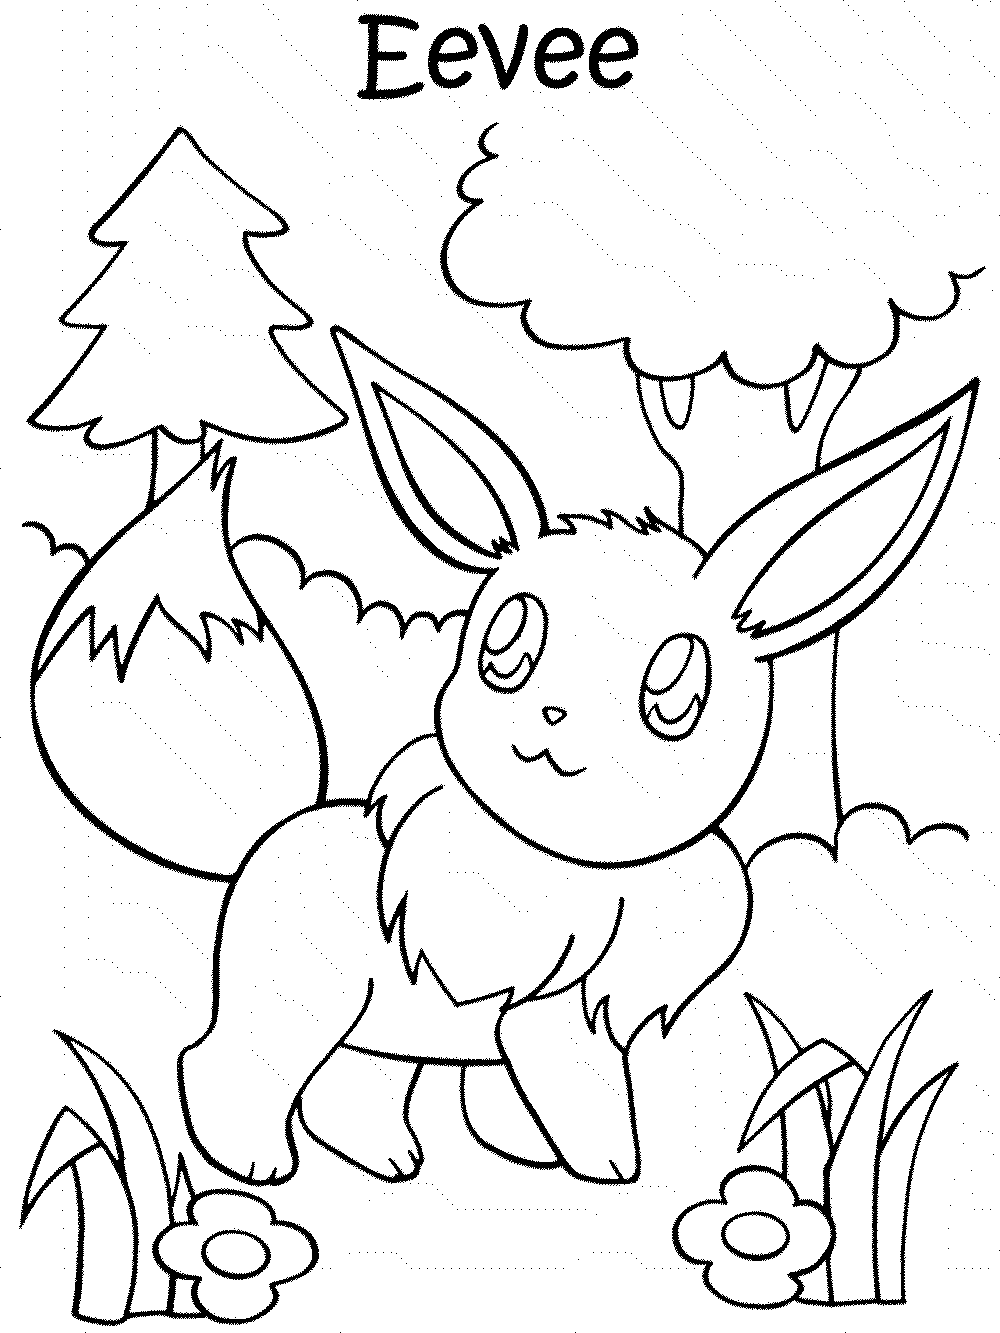 93 Printable Pokemon Coloring Pages Your Toddler Will Love ... | 1333x1000